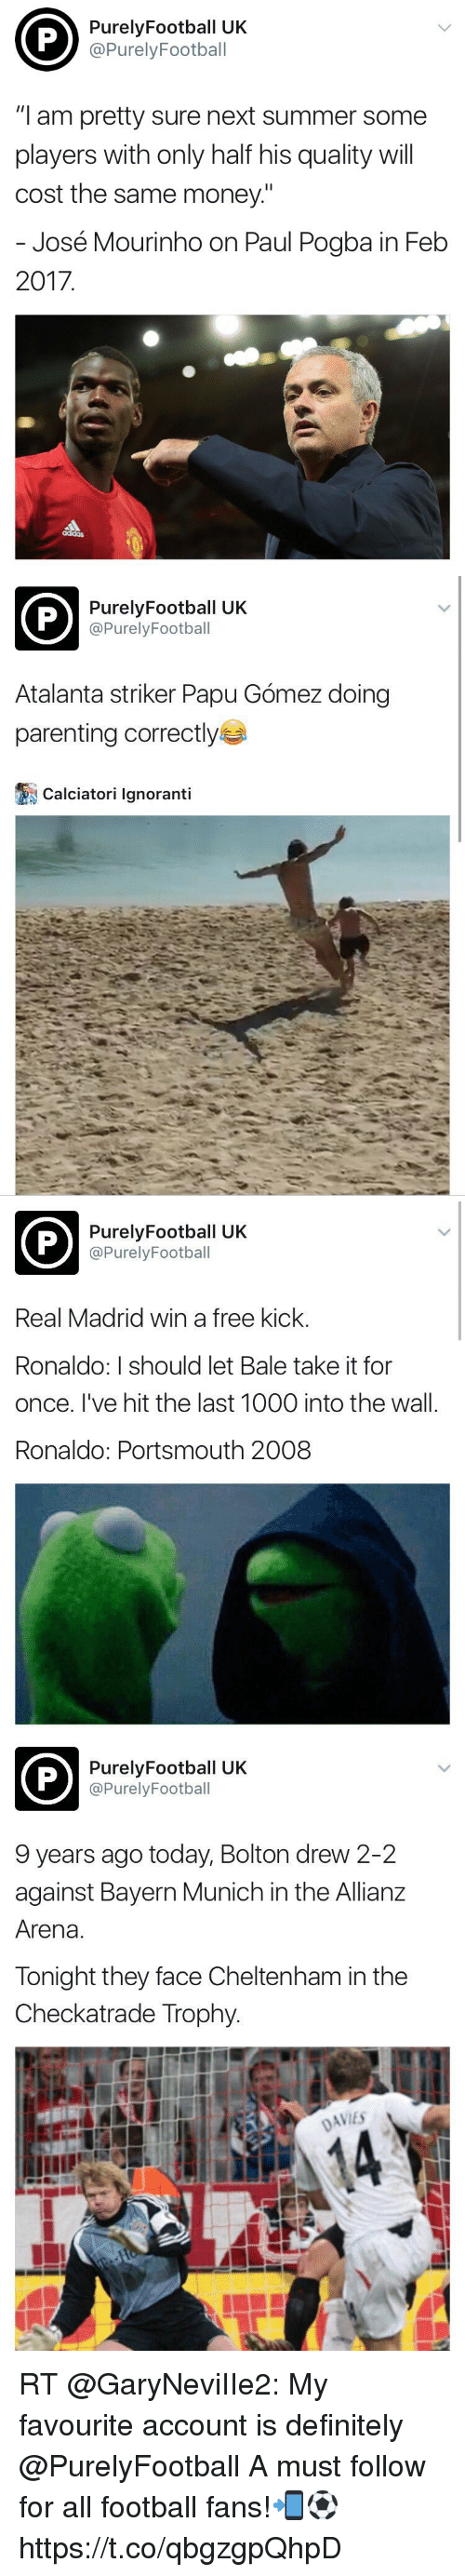 """Definitely, Football, and Memes: PurelyFootball UK  @PurelyFootball  """"I am pretty sure next summer some  players with only half his quality will  cost the same money.""""  José Mourinho on Paul Pogba in Feb  2017   PurelyFootball UK  @PurelyFootball  Atalanta striker Papu Gómez doing  parenting correctly  Calciatori Ignoranti   PurelyFootball UK  @PurelyFootball  Real Madrid win a free kick.  Ronaldo: I should let Bale take it for  once. I've hit the last 1000 into the wall.  Ronaldo: Portsmouth 2008   PurelyFootball UK  @PurelyFootball  9 years ago today, Bolton drew 2-2  against Bayern Munich in the Allianz  Arena.  Tonight they face Cheltenham in the  Checkatrade Trophy.  DAVIES RT @GaryNeviIIe2: My favourite account is definitely @PurelyFootball   A must follow for all football fans!📲⚽️ https://t.co/qbgzgpQhpD"""